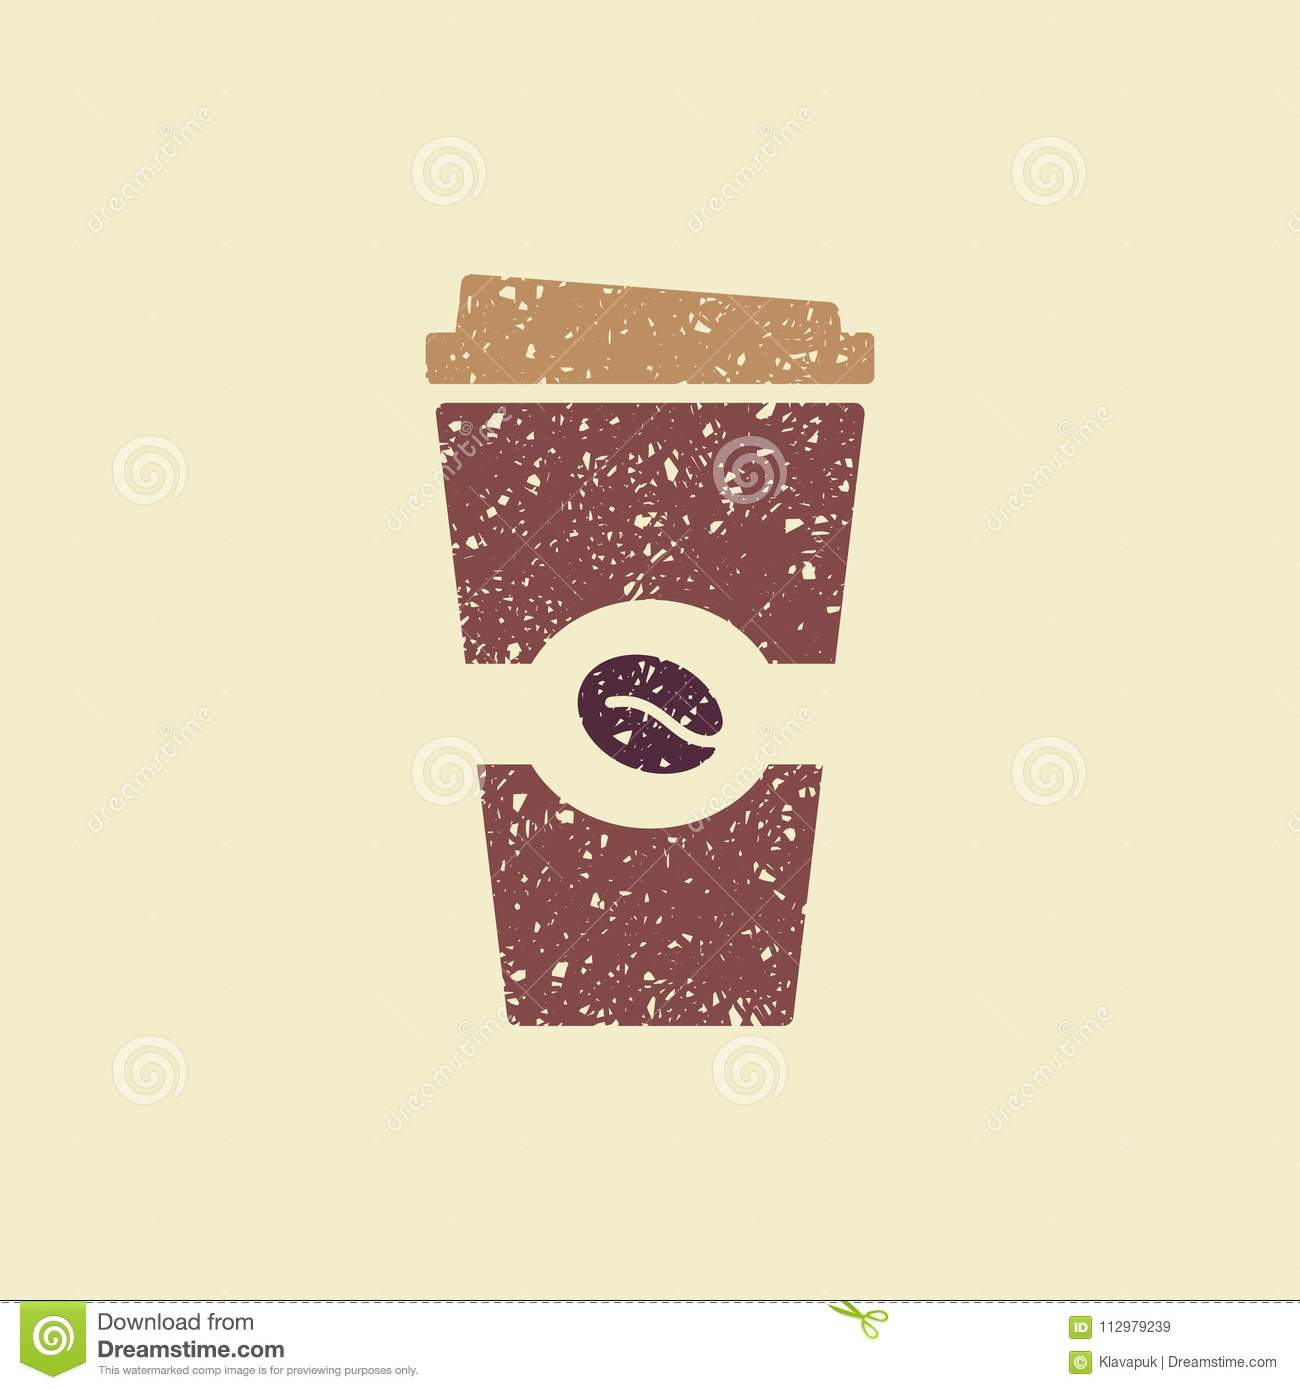 Vector illustration paper coffee cup